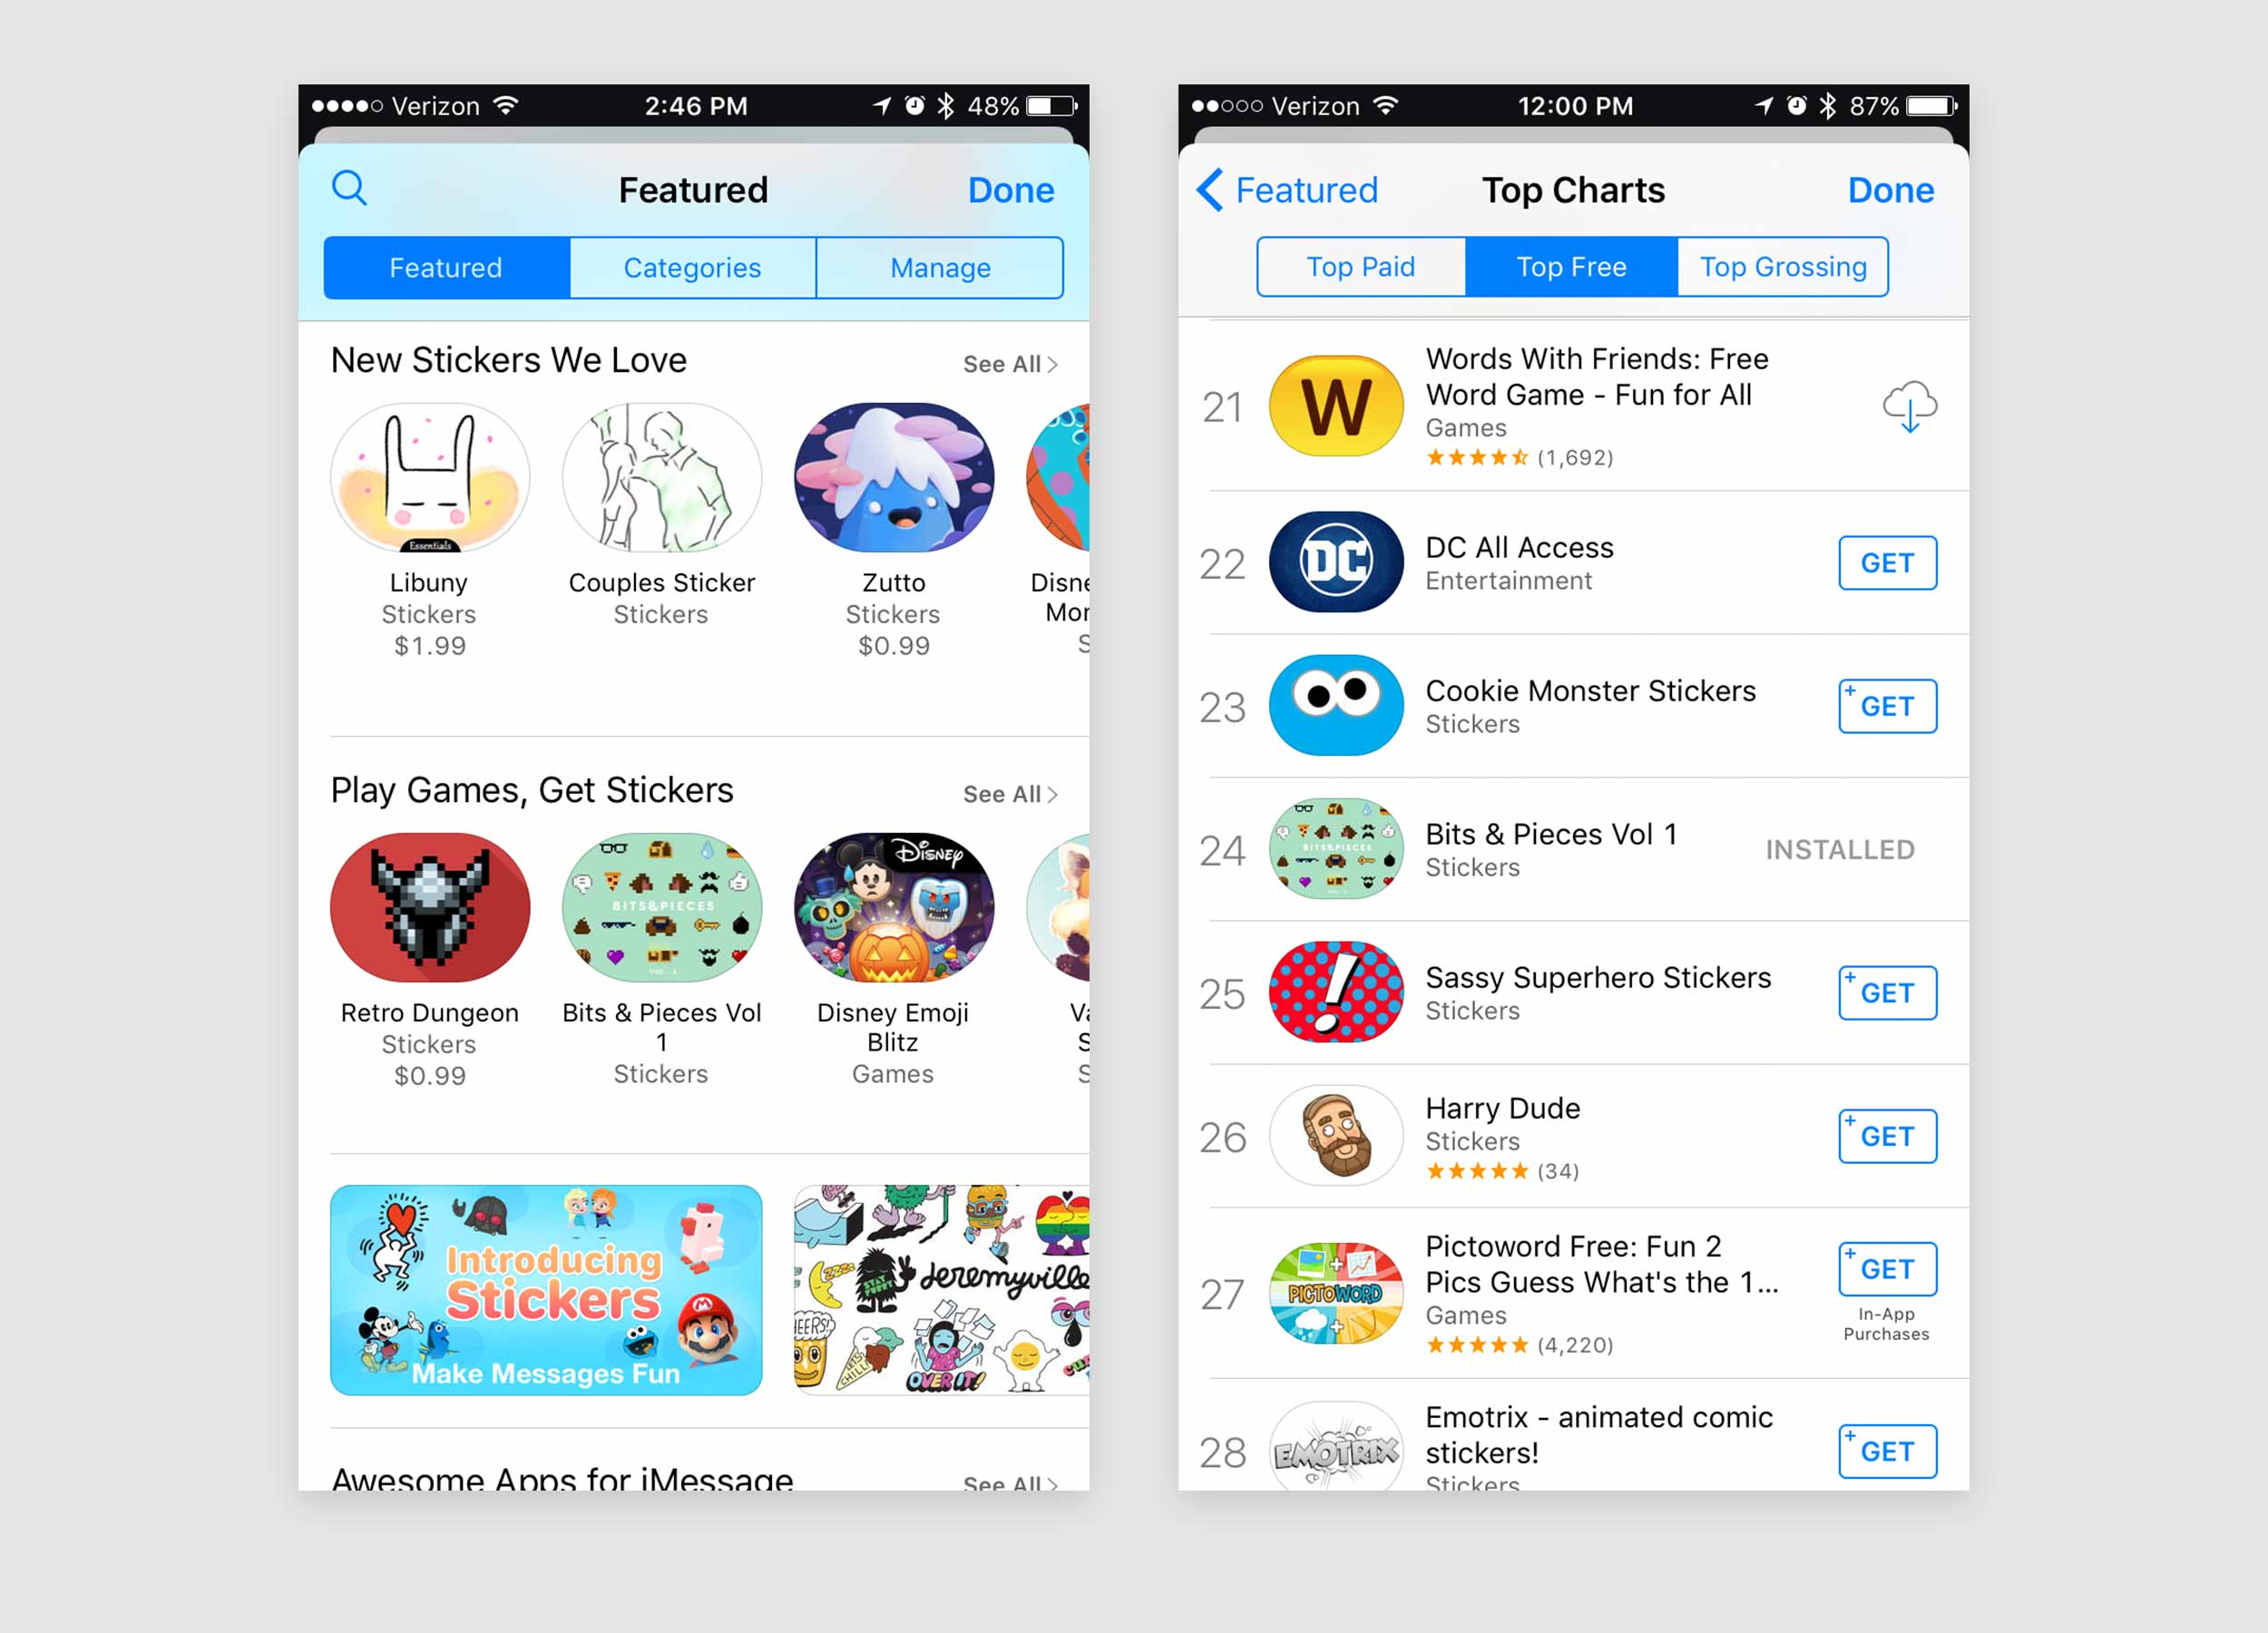 Featured in a Games themed section on the home page, my sticker pack climbed it's way up into the top 25 charts.